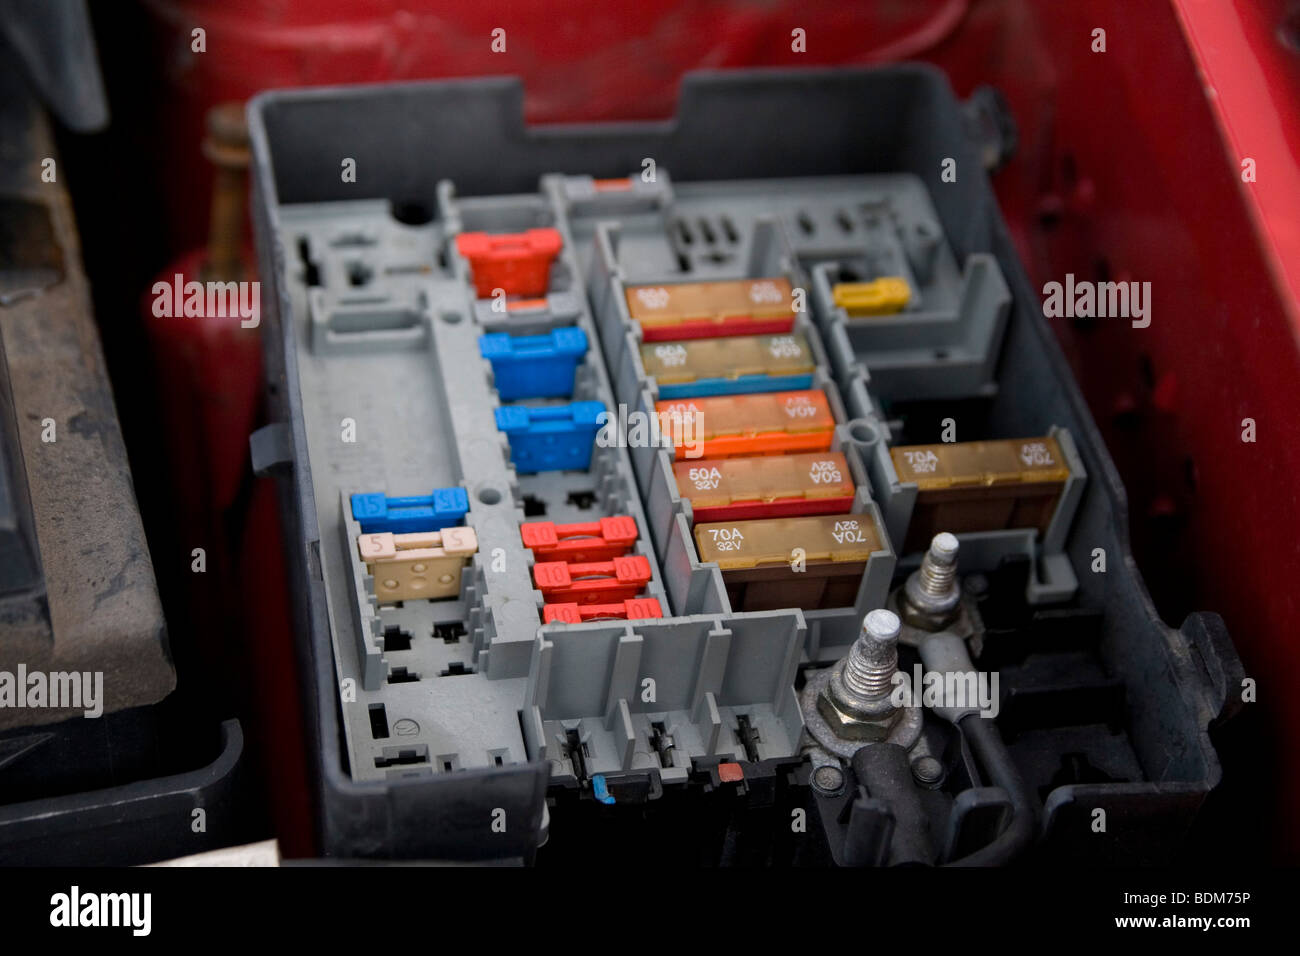 citroen berlingo fuse box stock photo royalty image citroen berlingo fuse box stock photo